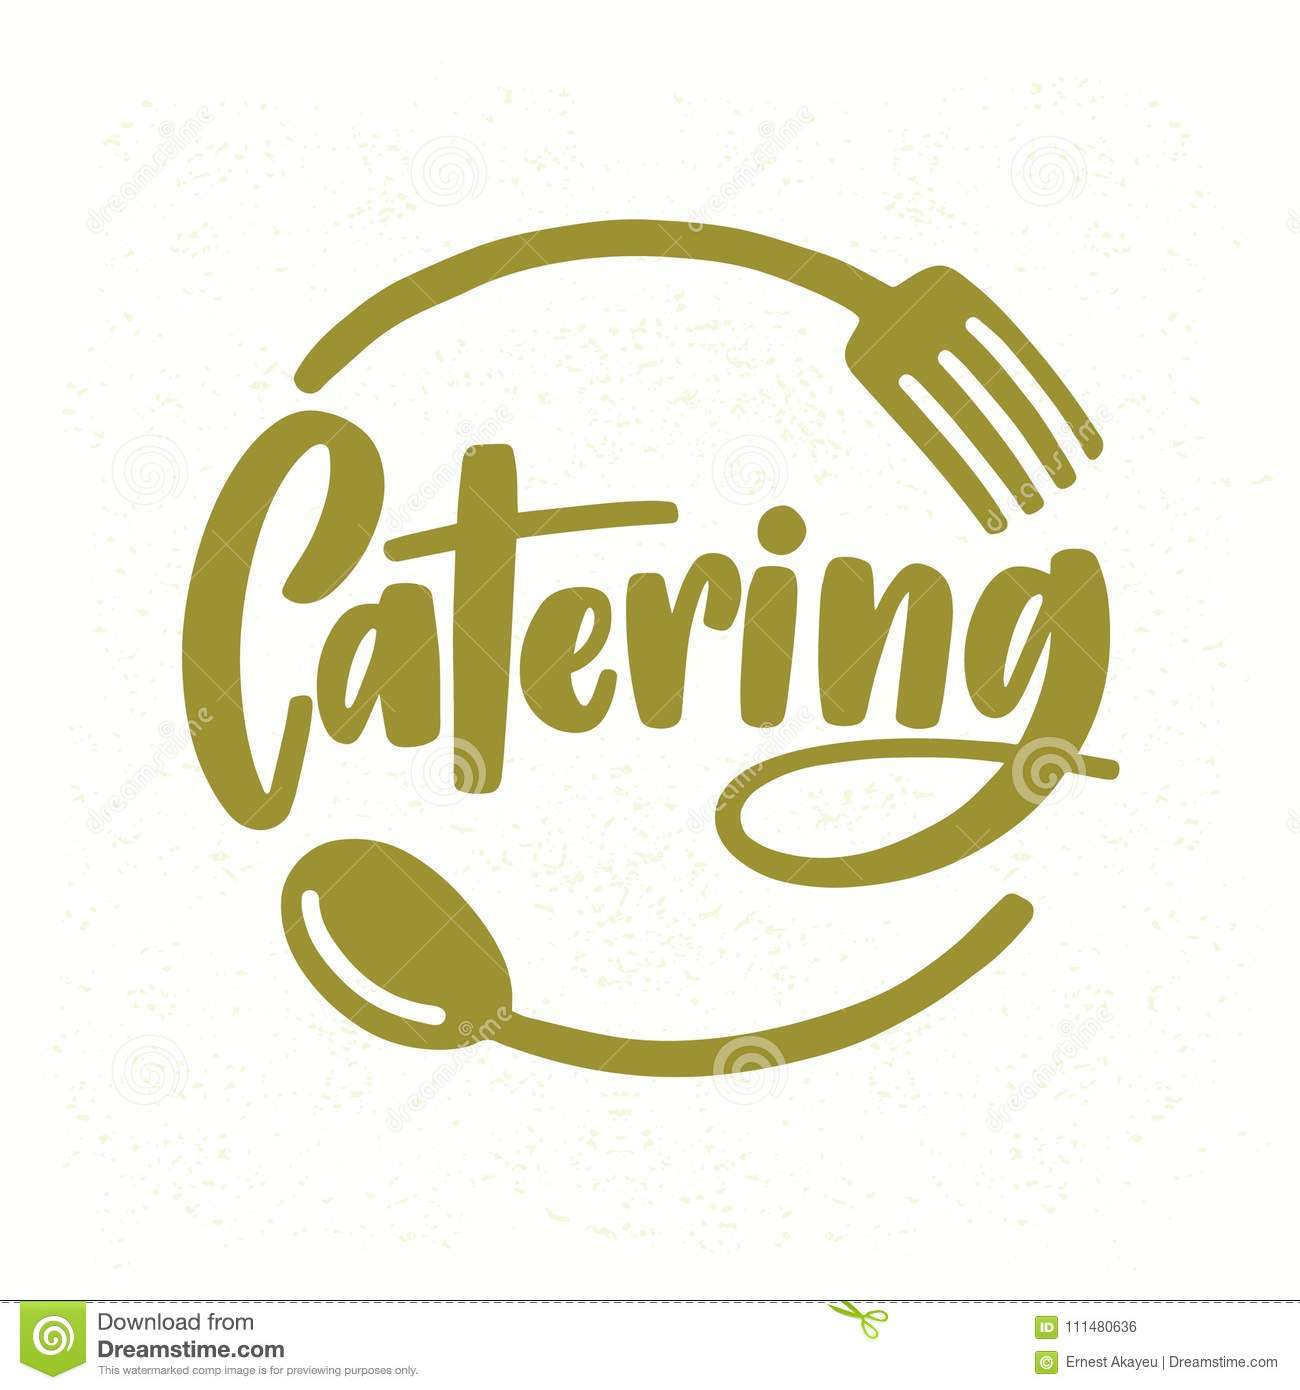 Catering Company Logo With Elegant Lettering Handwritten